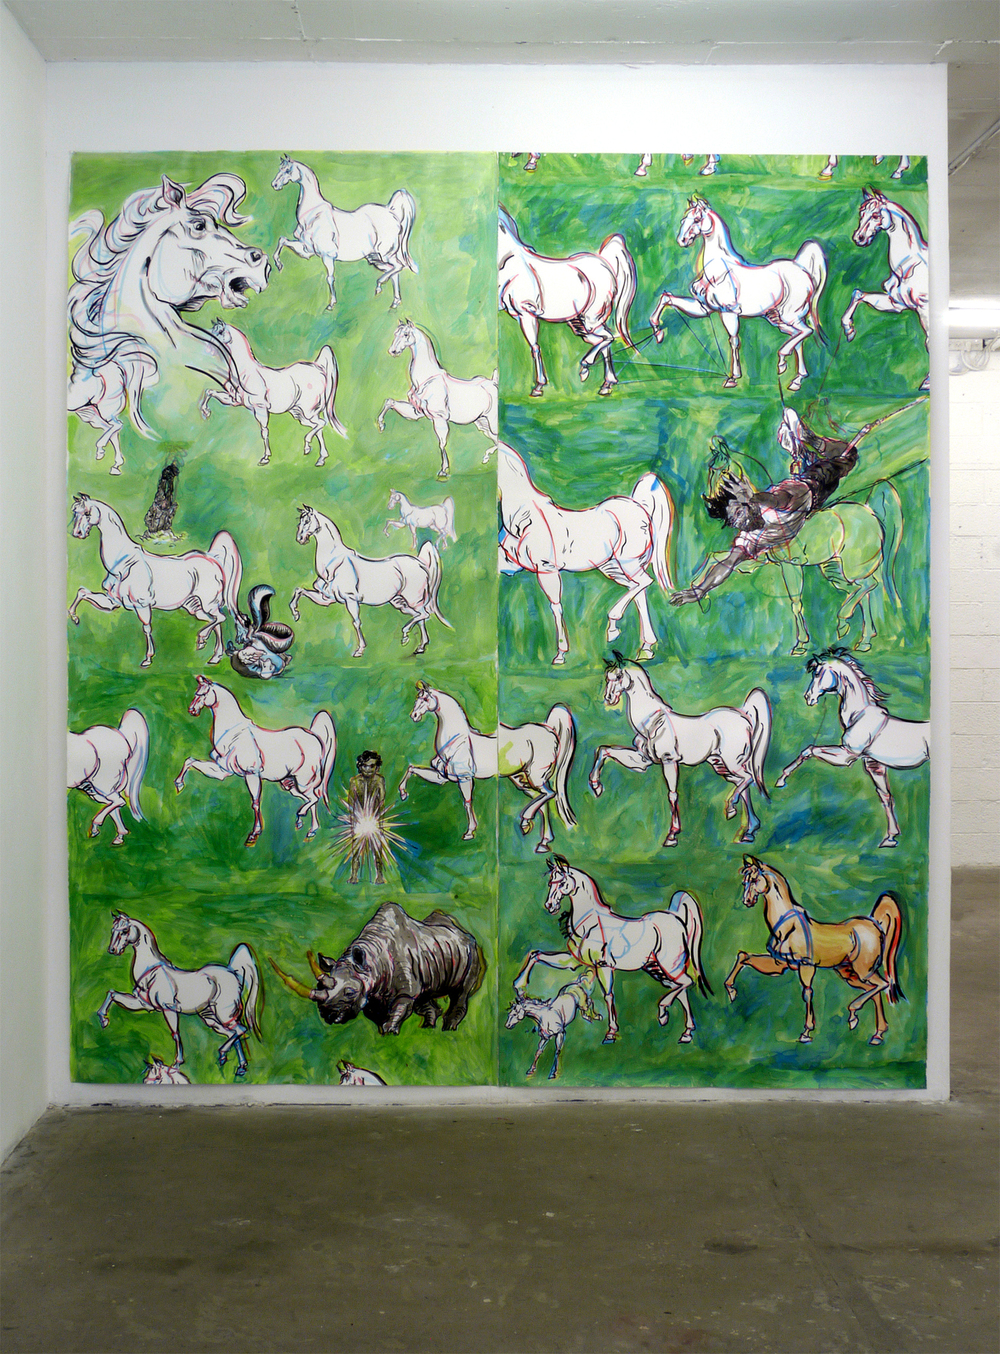 Looks Like We Are Shy of One Horse Ink on paper 2012